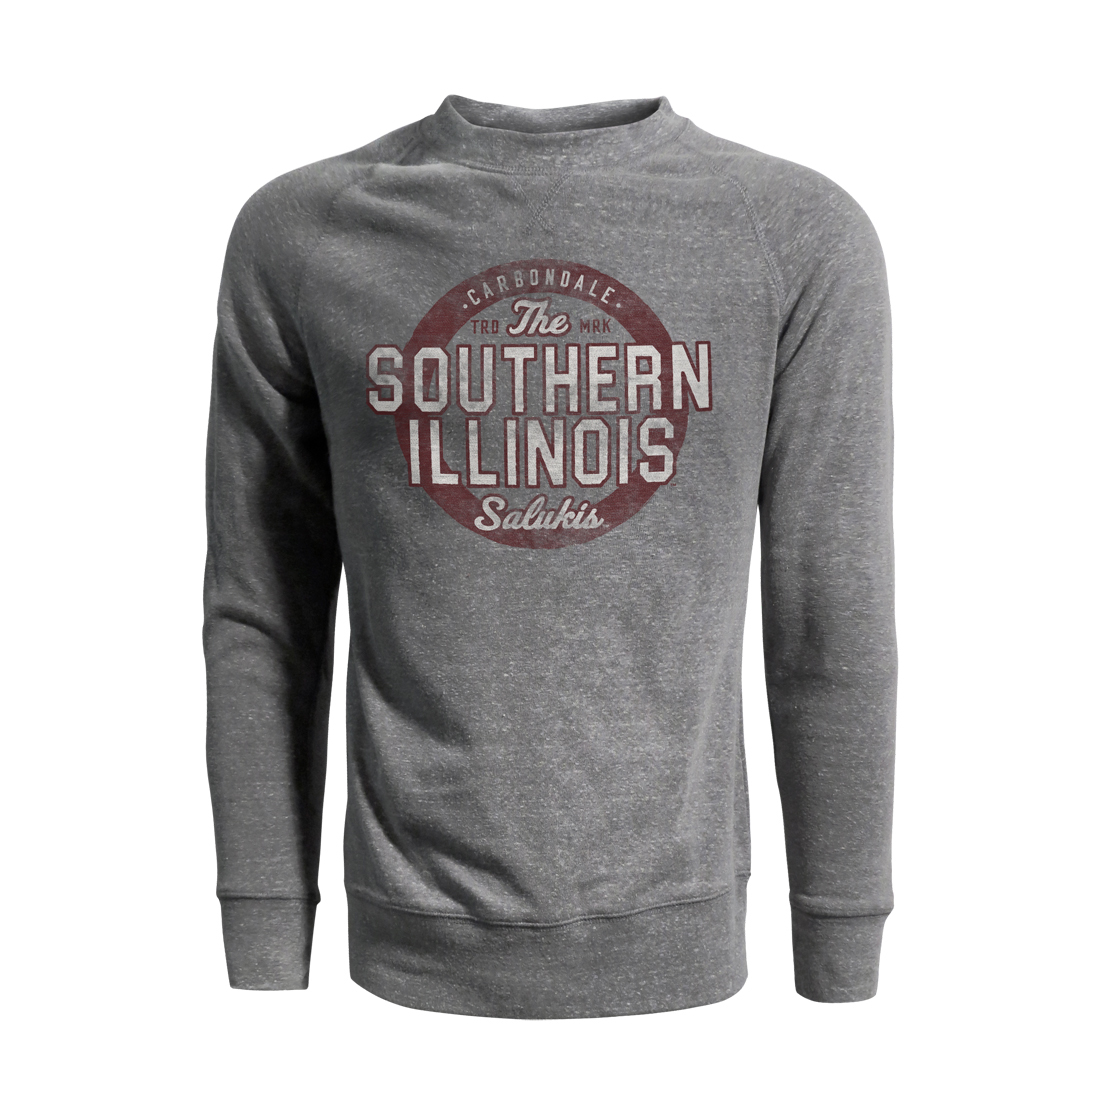 Image for the J AMERICA® SOUTHERN ILLINOIS SALUKIS VINTAGE TRI-BLEND FLEECE CREW product